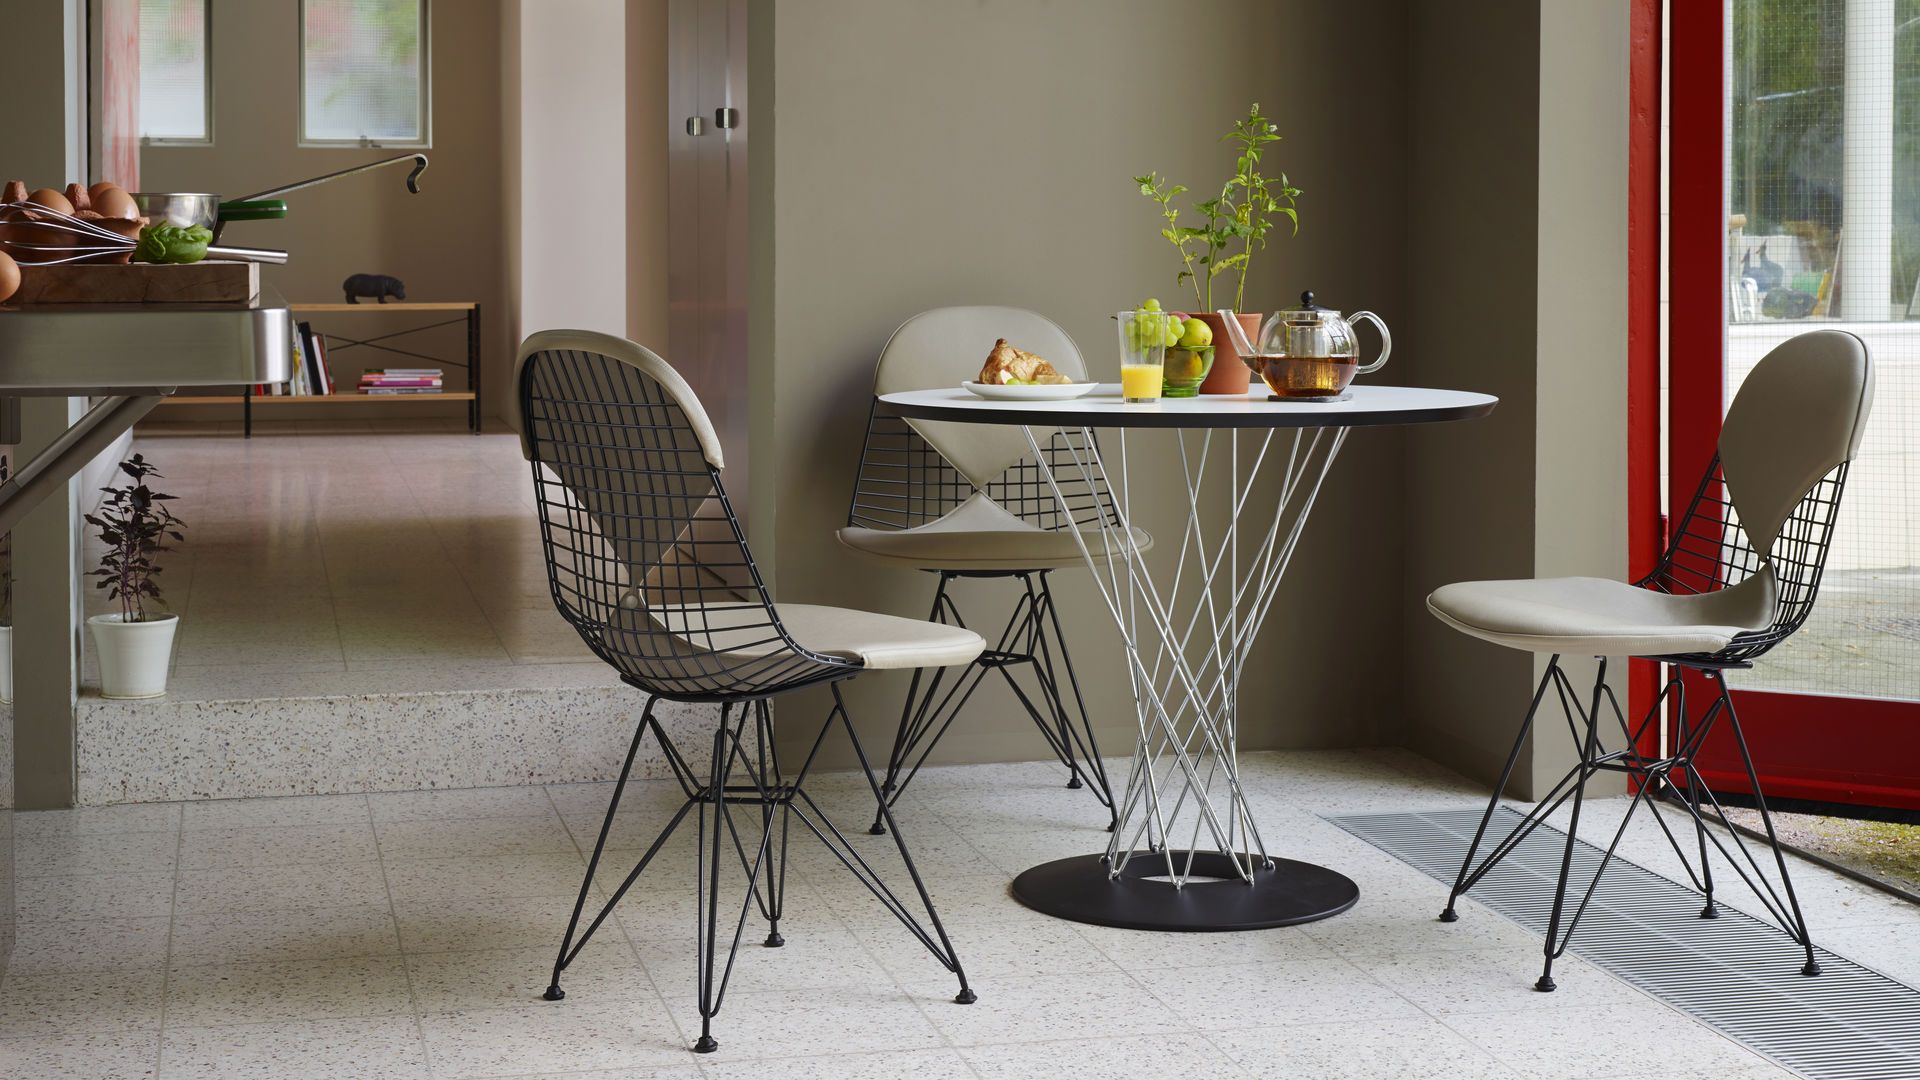 Dining Table, Wire Chair DKR_web_16-9